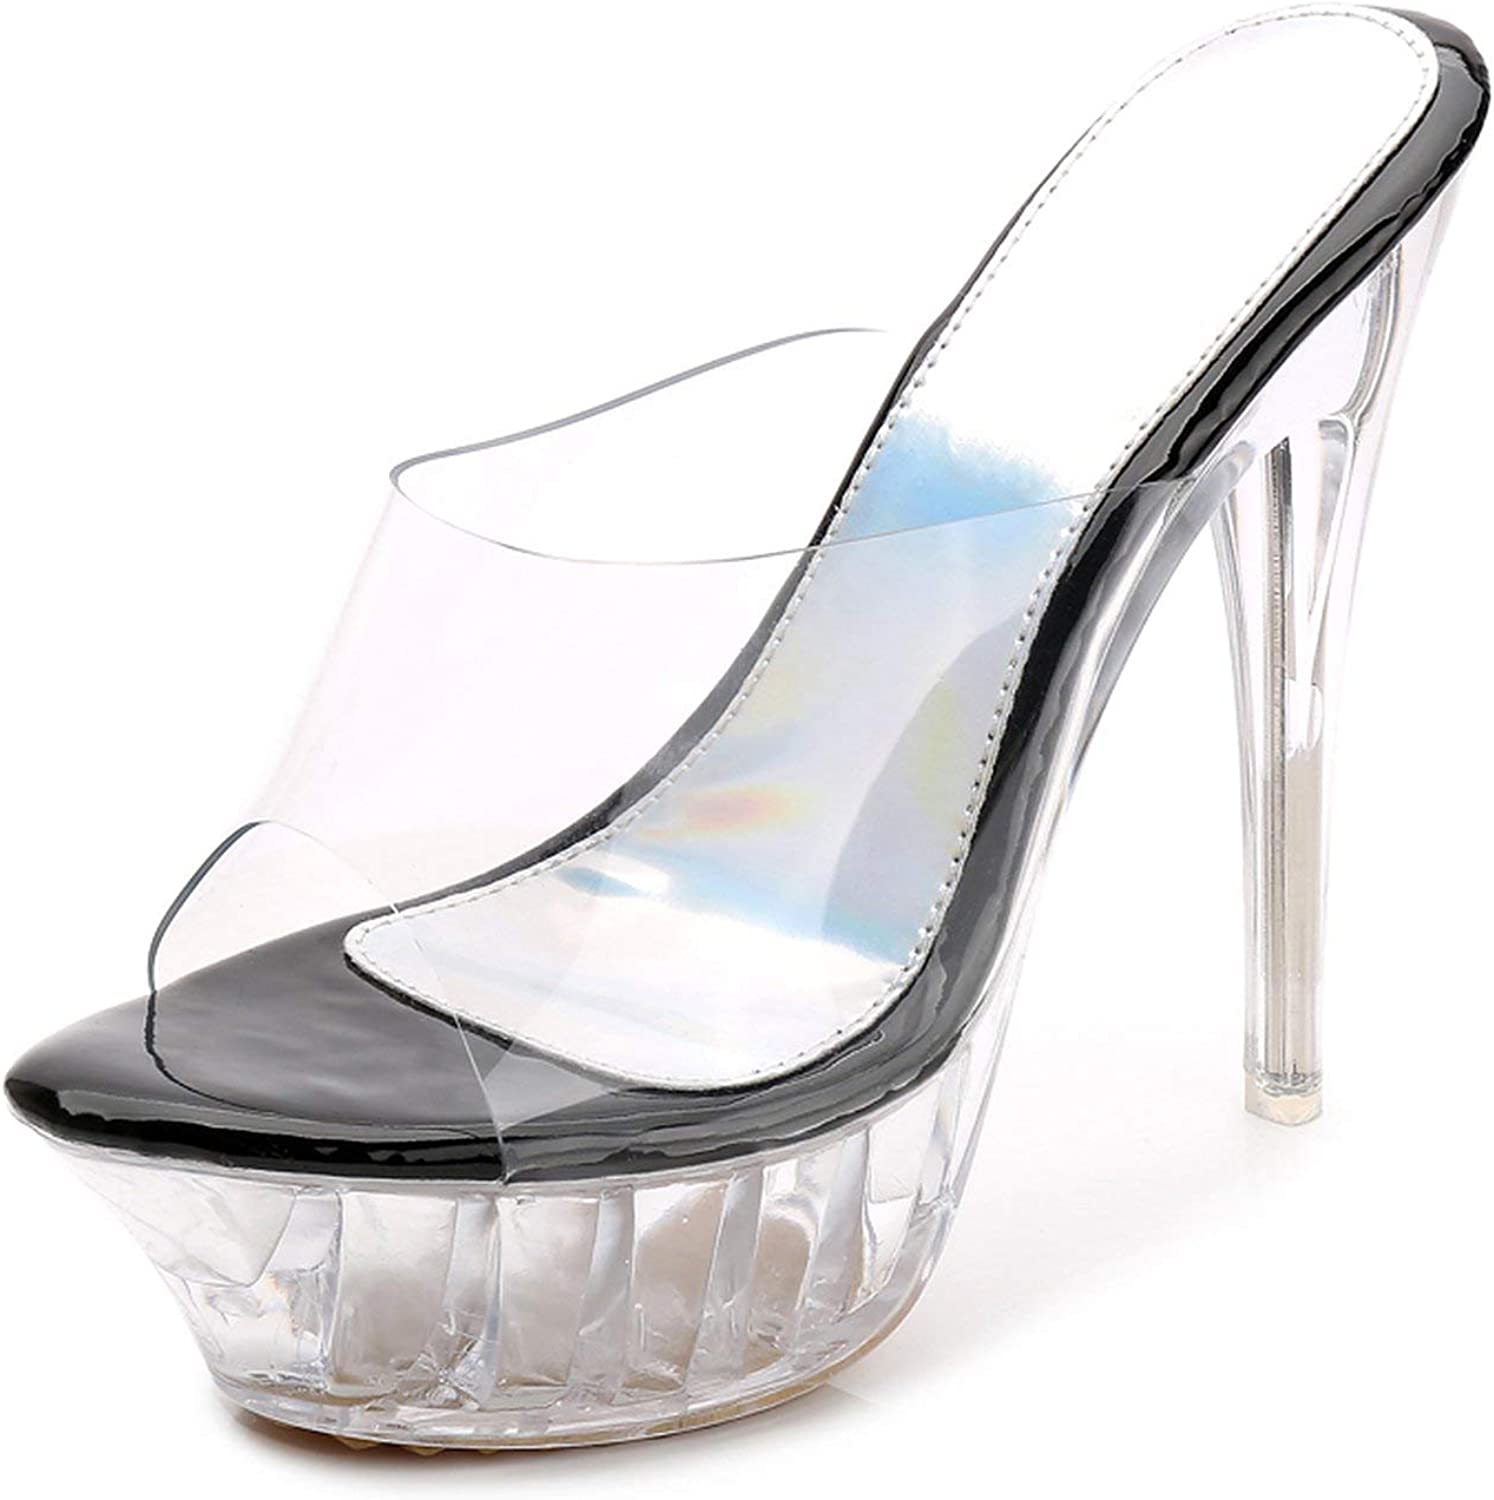 High Heels Womens Sandals Transparent Crystal Heel Model T Stage Sexy Lady Heeled shoes 35-43,1456black,11